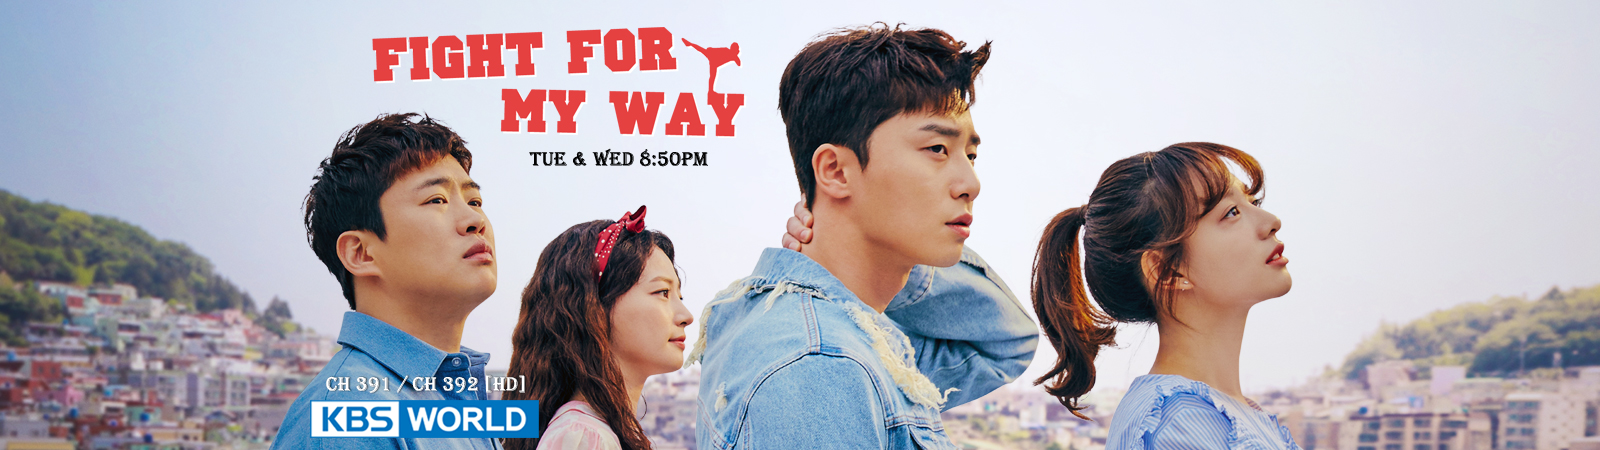 Fight for my way - Resenha